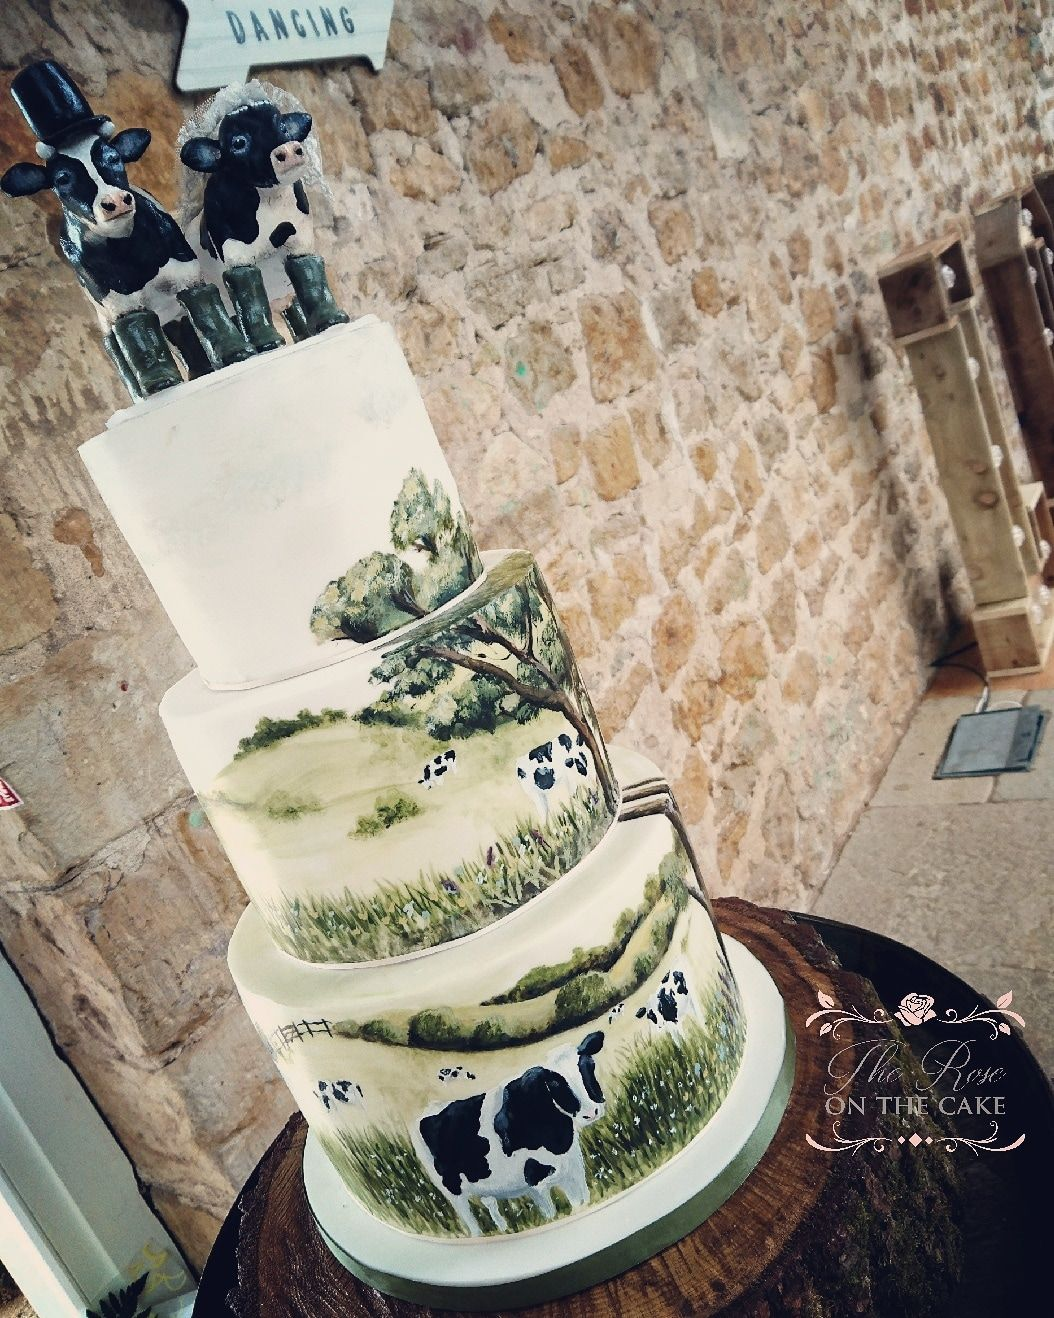 Farm Countryside Cow Wedding Cake Dairy Farmers Hand Painted With Cocoa Er Fimo Toppers The Rose On